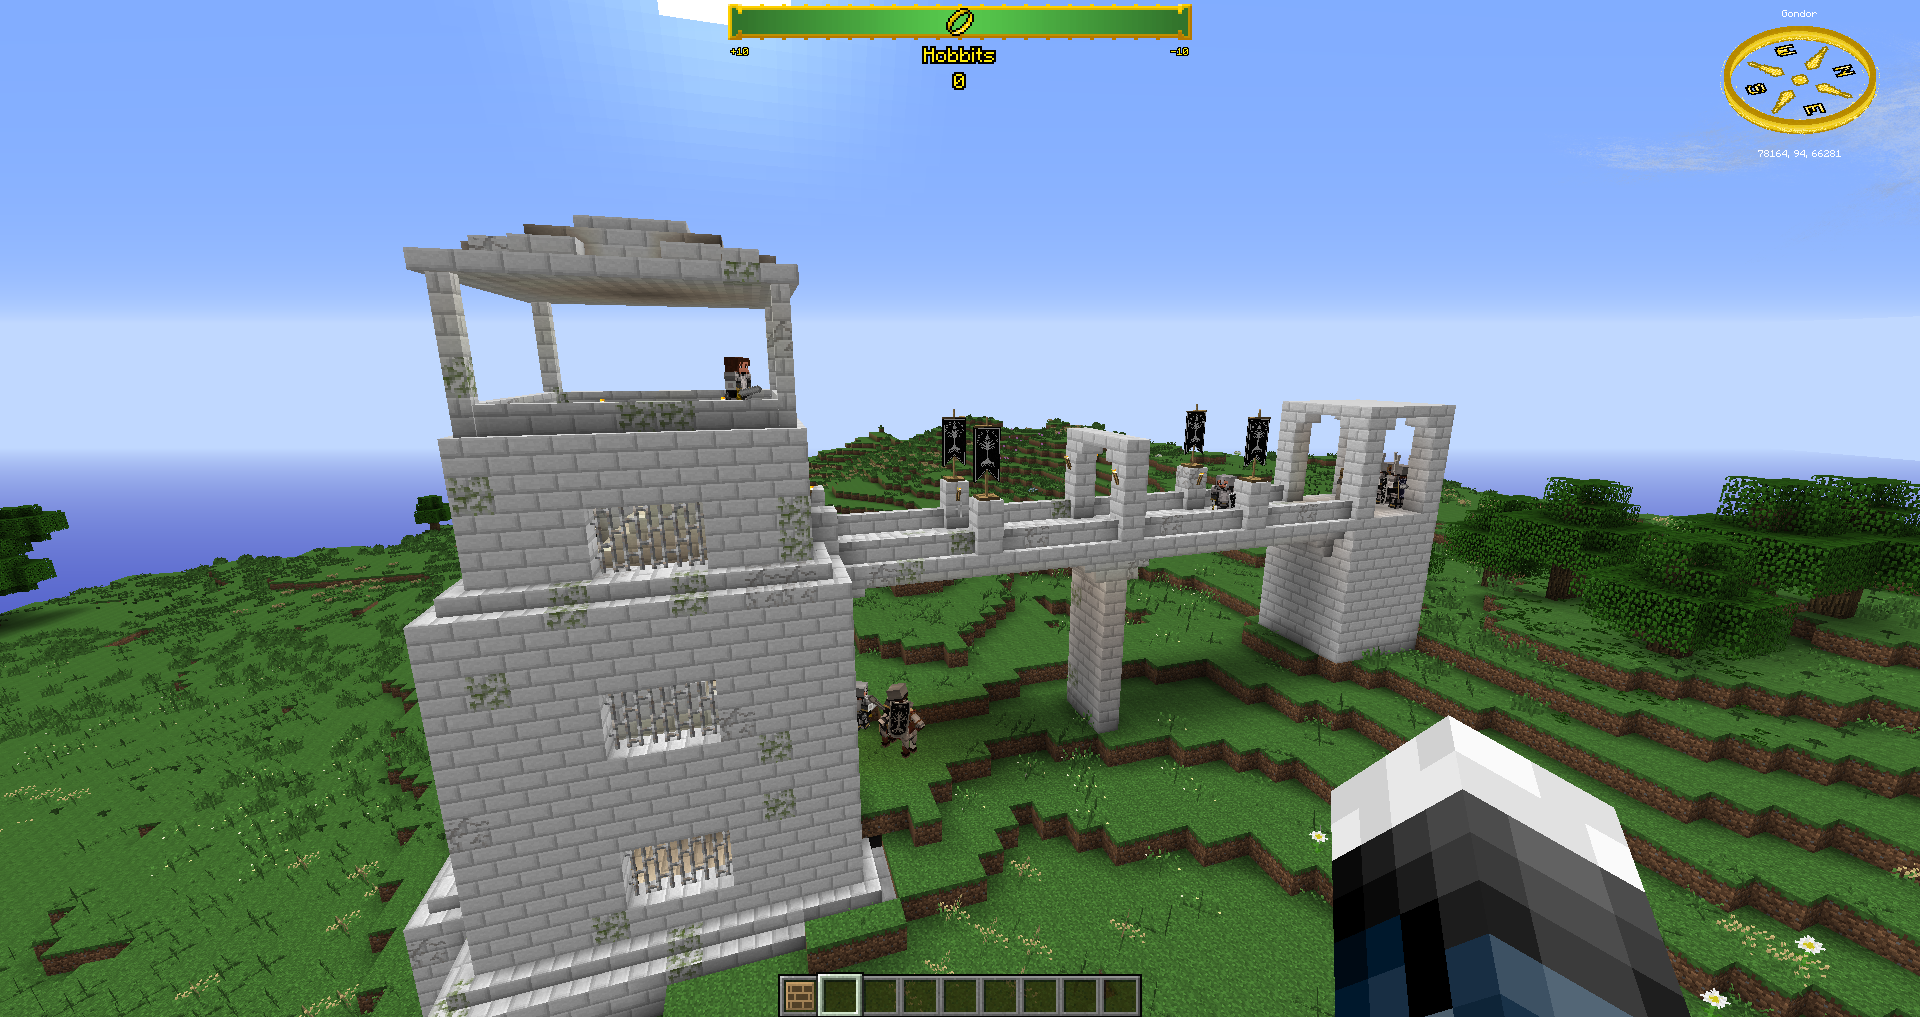 Gondor   The Lord of the Rings Minecraft Mod Wiki   Fandom powered ...